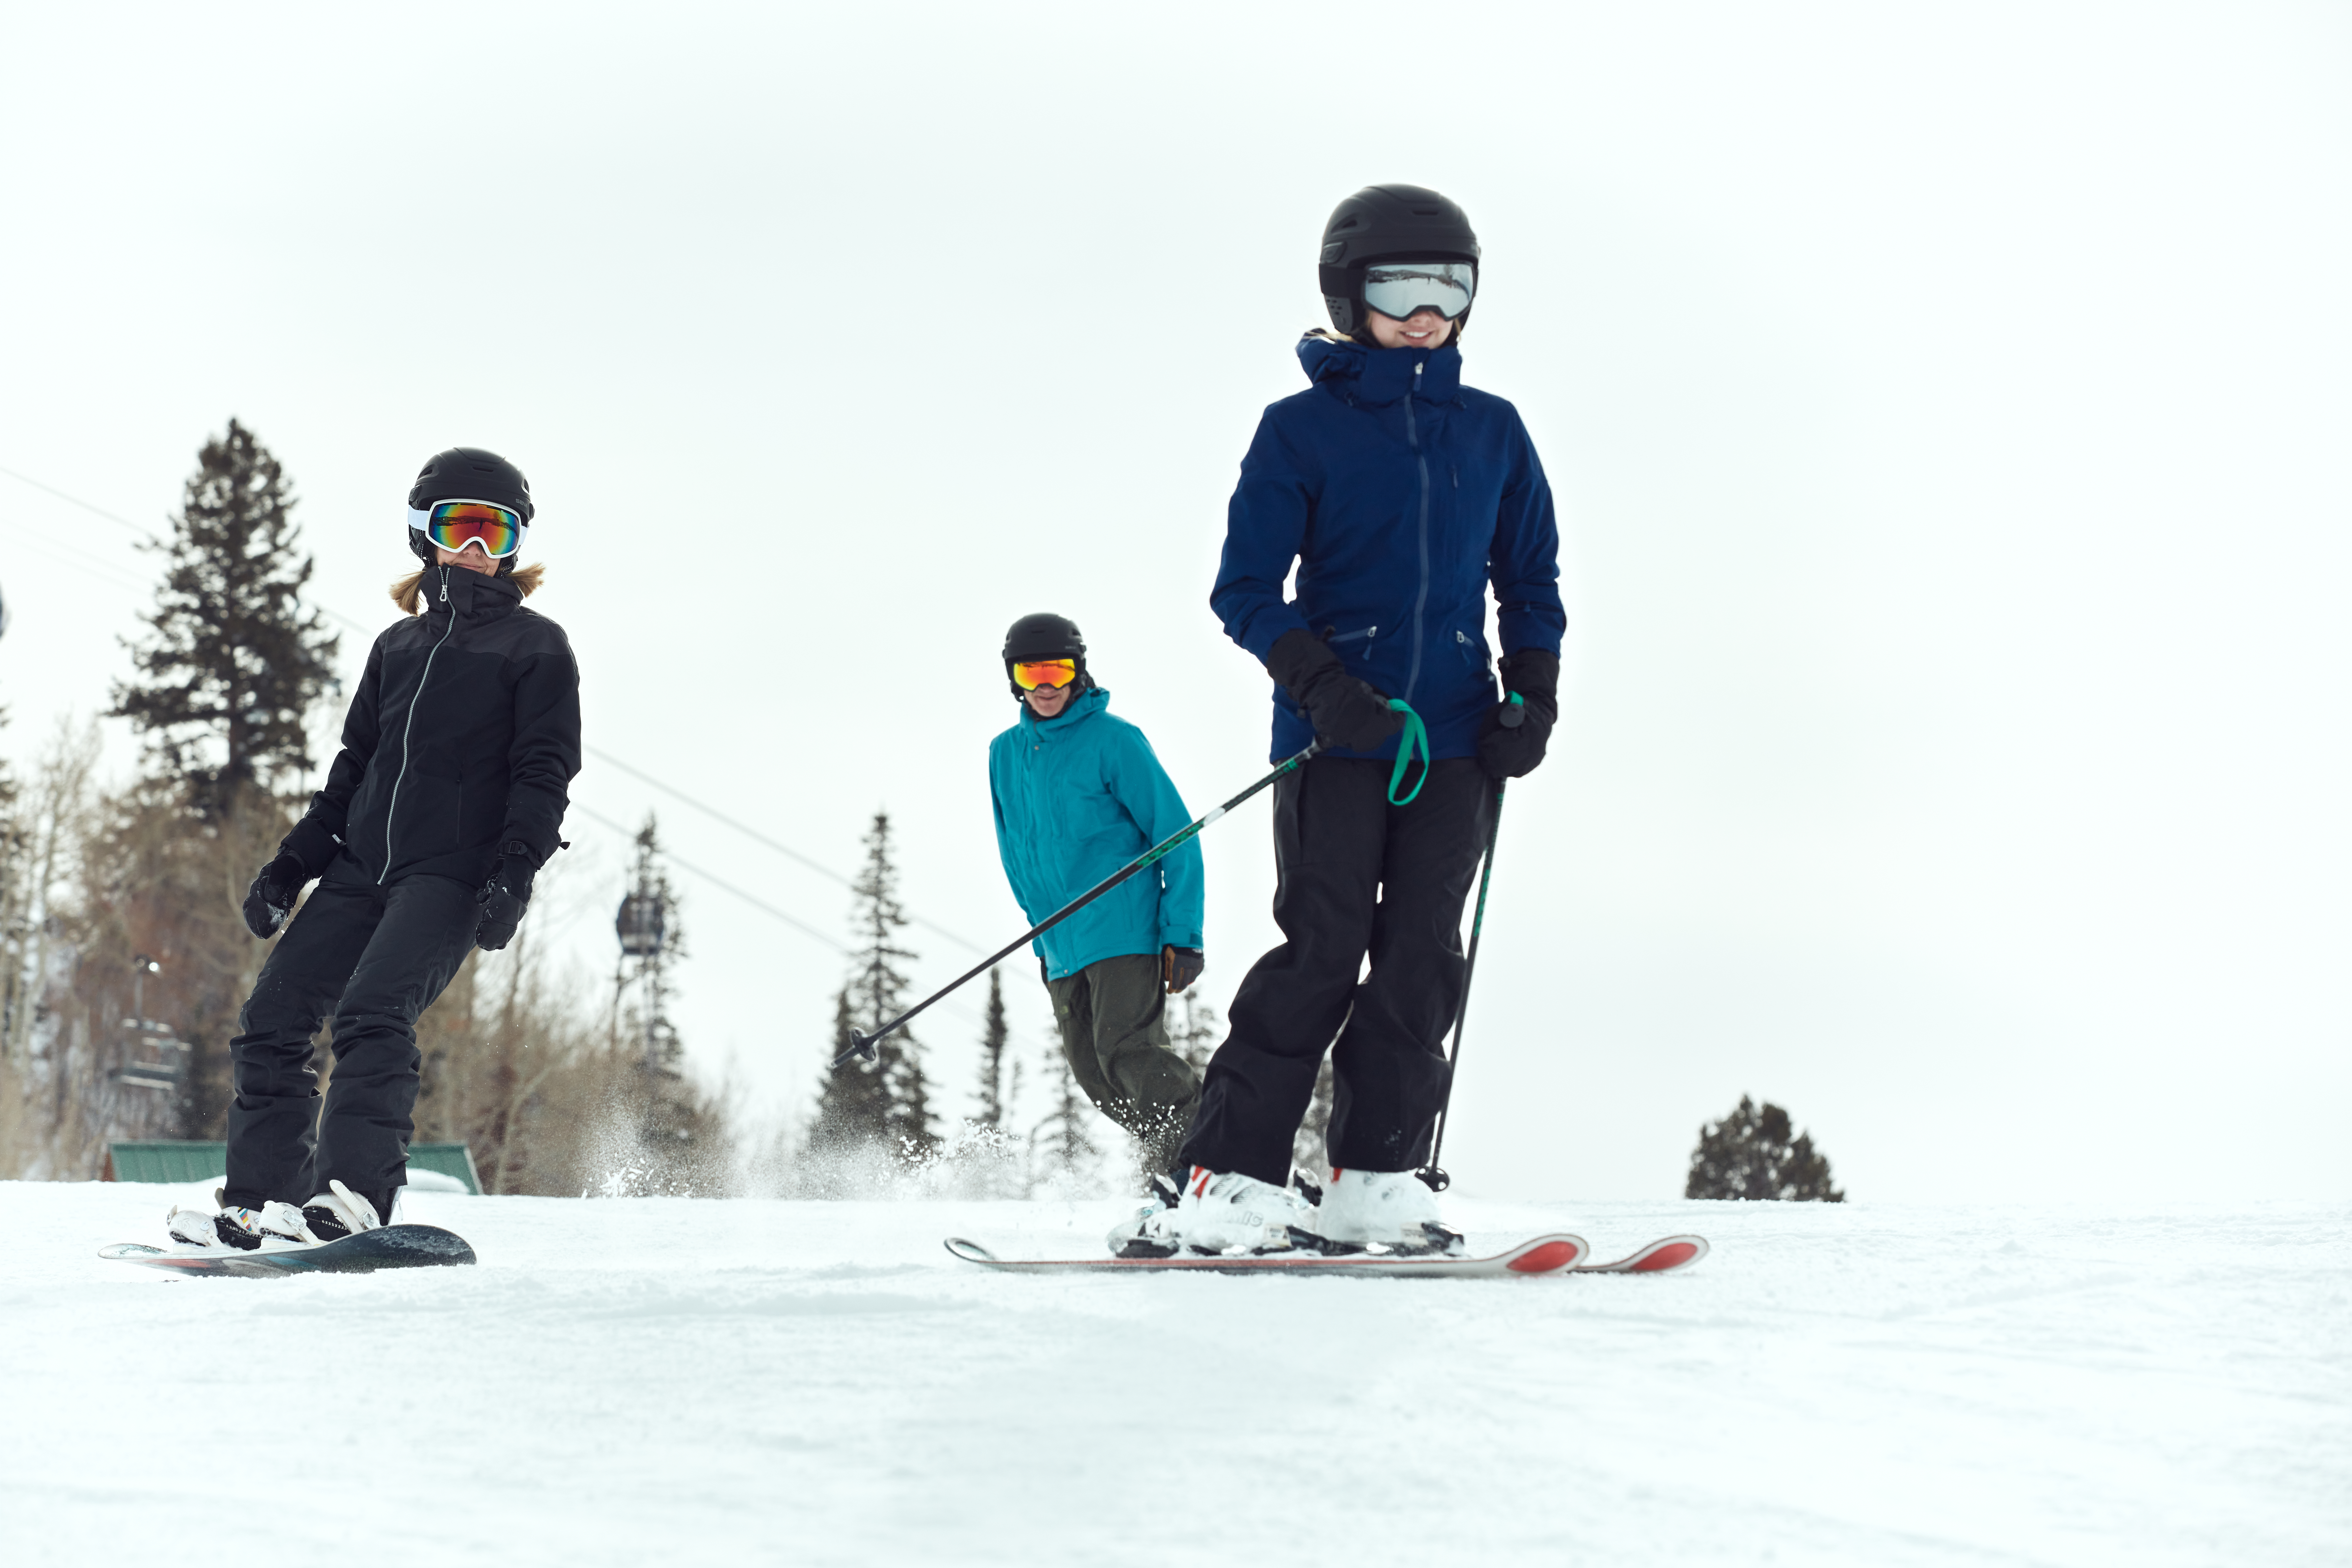 Skiers with the Latitude helmet